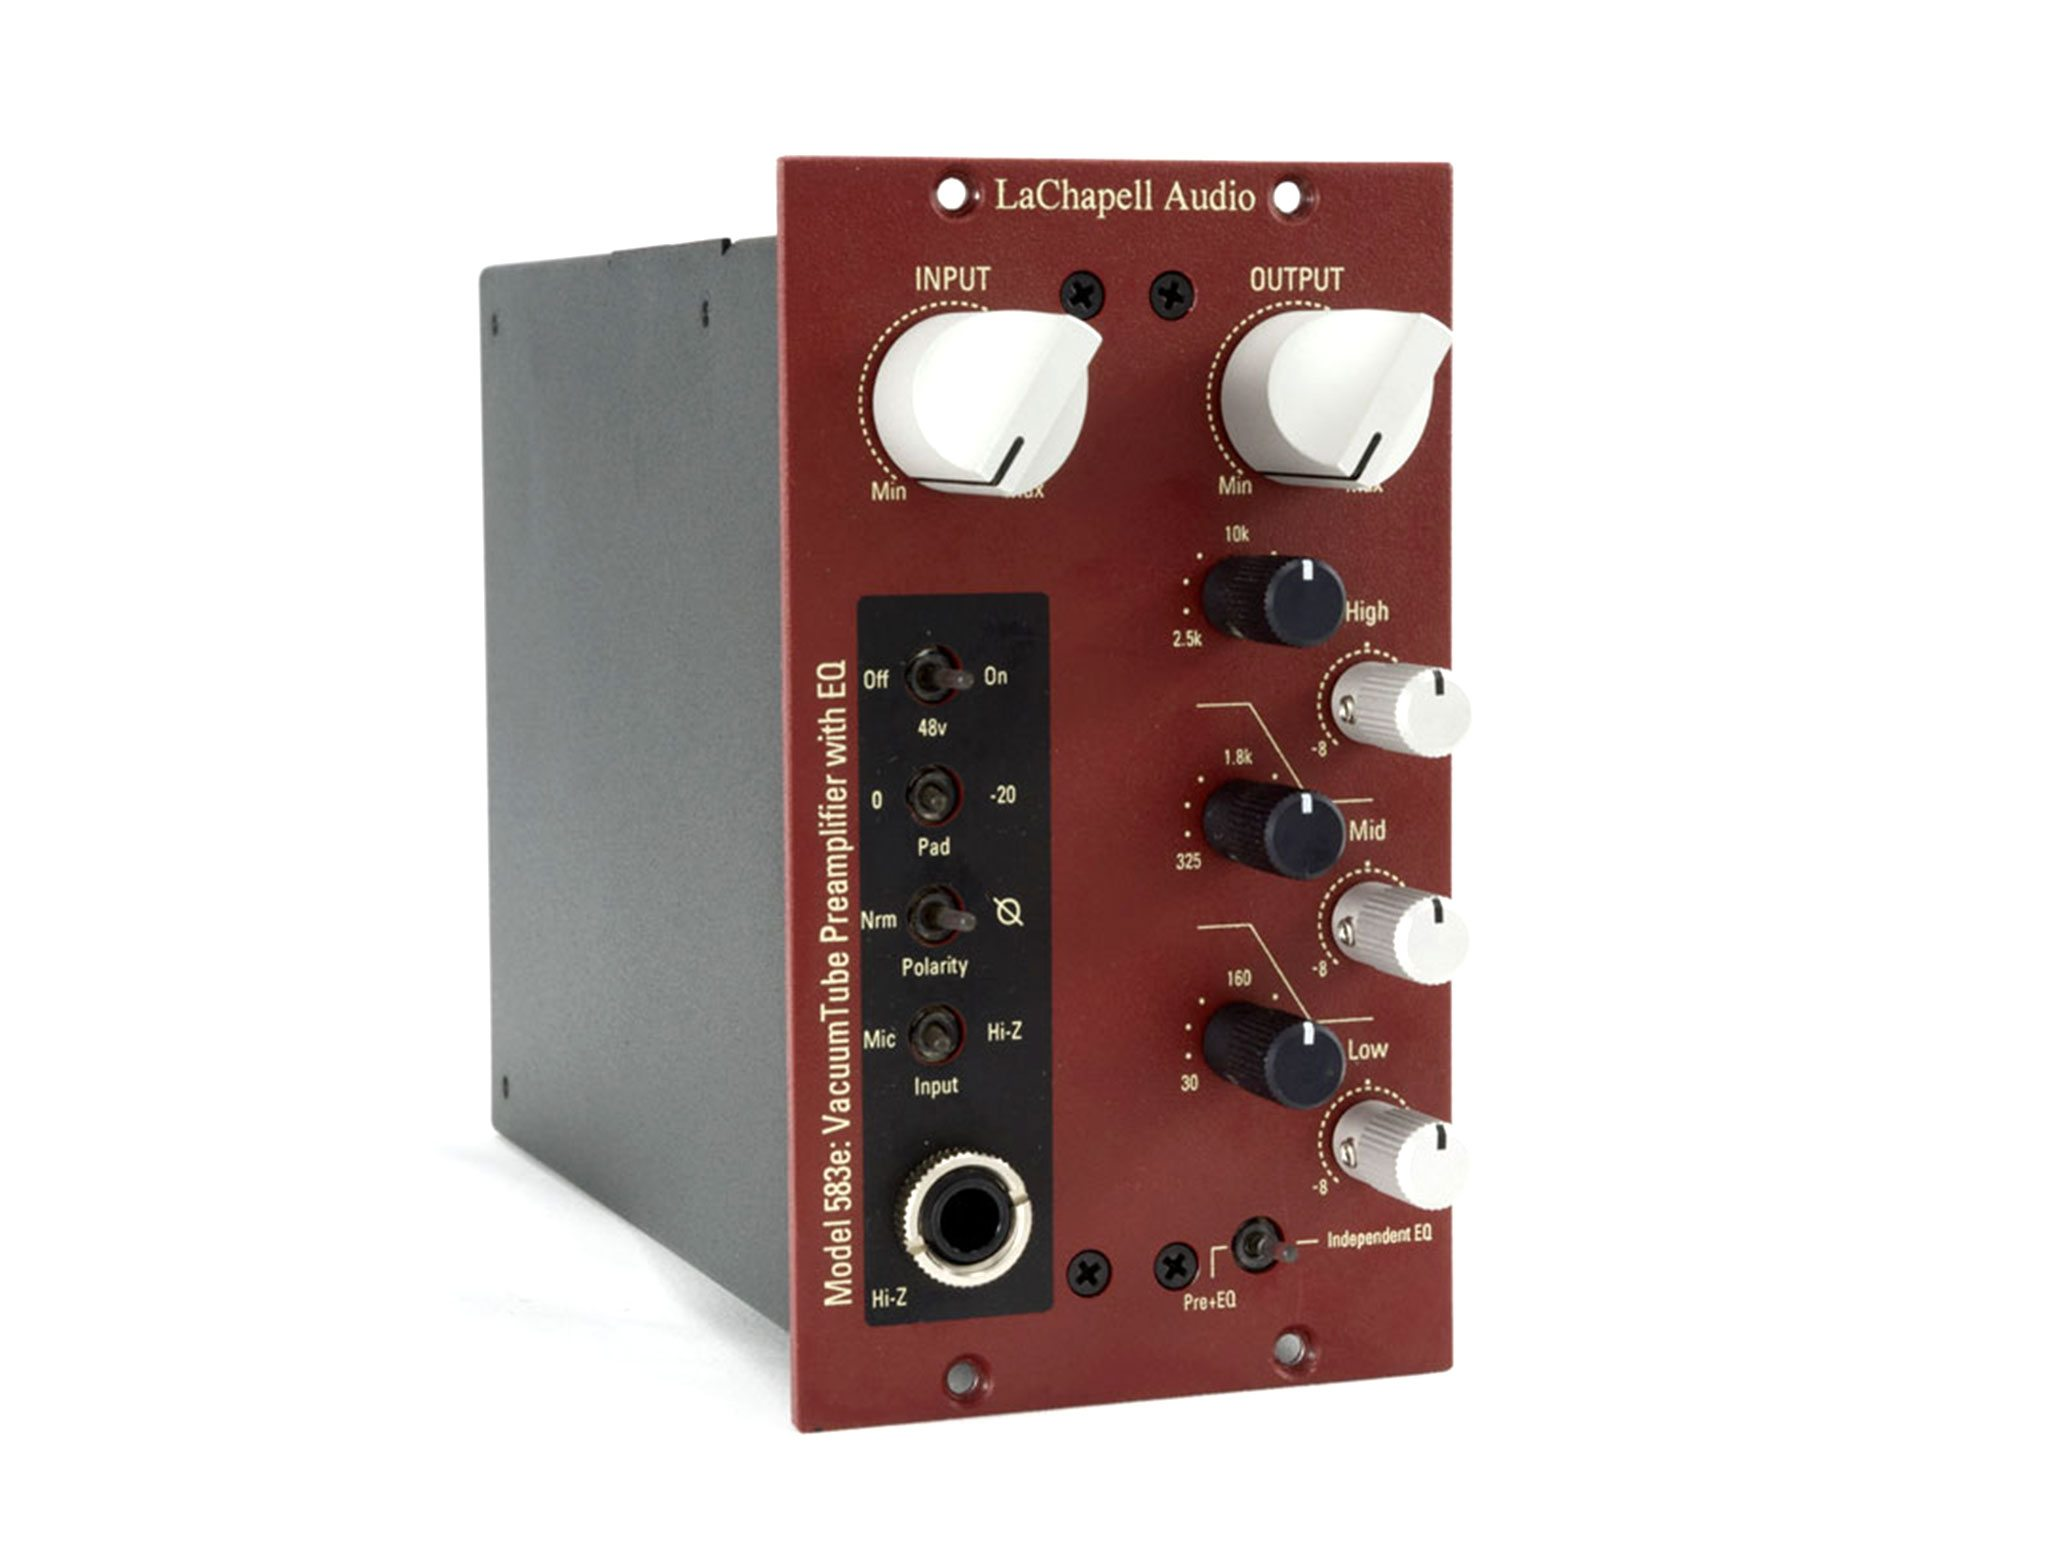 LaChapell Audio 583e 500 series tube microphone preamp with integrated EQ angle 2 image